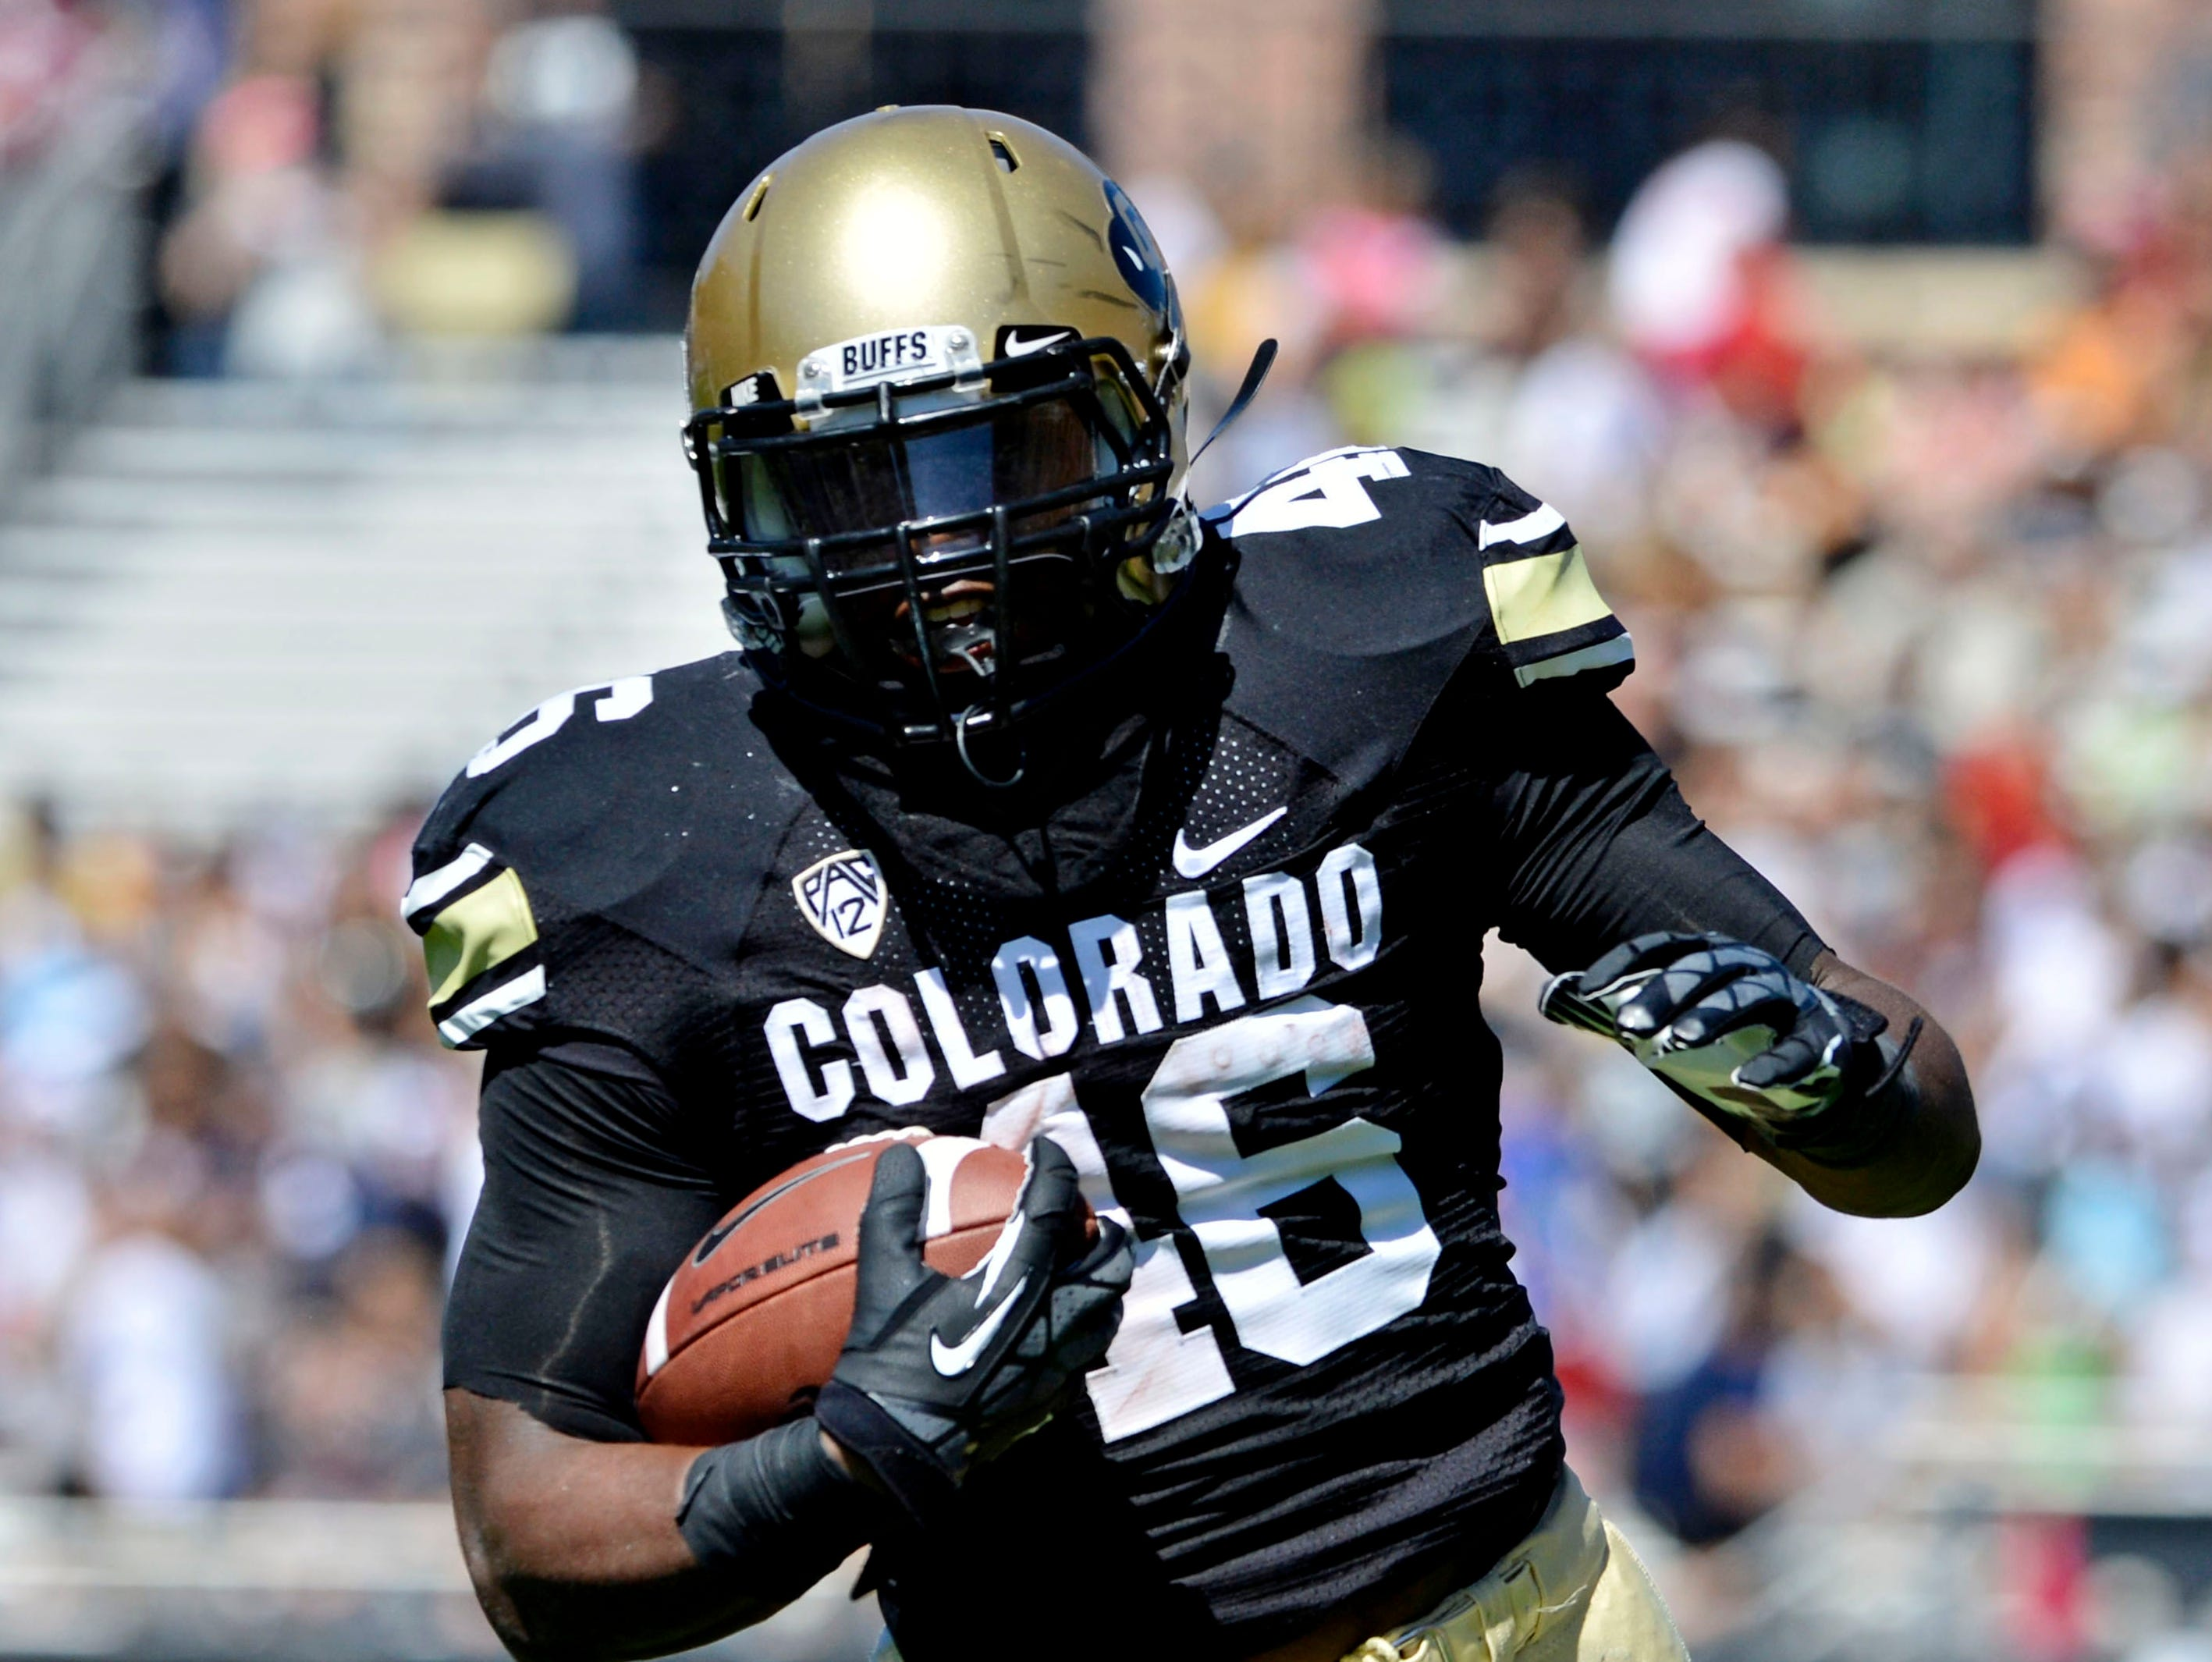 2012-09-08-christian-powell-colorado-football